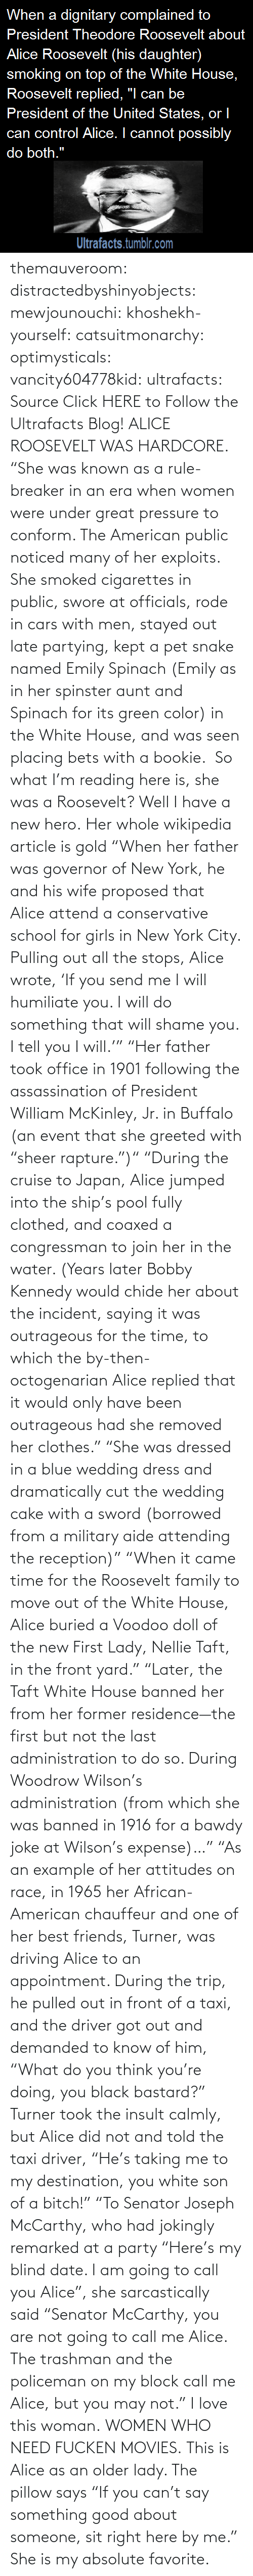 "noticed: themauveroom: distractedbyshinyobjects:  mewjounouchi:  khoshekh-yourself:  catsuitmonarchy:  optimysticals:  vancity604778kid:  ultrafacts:     Source Click HERE to Follow the Ultrafacts Blog!     ALICE ROOSEVELT WAS HARDCORE. ""She was known as a rule-breaker in an era when women were under great pressure to conform. The American public noticed many of her exploits. She smoked cigarettes in public, swore at officials, rode in cars with men, stayed out late partying, kept a pet snake named Emily Spinach (Emily as in her spinster aunt and Spinach for its green color) in the White House, and was seen placing bets with a bookie.    So what I'm reading here is, she was a Roosevelt?  Well I have a new hero.  Her whole wikipedia article is gold ""When her father was governor of New York, he and his wife proposed that Alice attend a conservative school for girls in New York City. Pulling out all the stops, Alice wrote, 'If you send me I will humiliate you. I will do something that will shame you. I tell you I will.'"" ""Her father took office in 1901 following the assassination of President William McKinley, Jr. in Buffalo (an event that she greeted with ""sheer rapture."")"" ""During the cruise to Japan, Alice jumped into the ship's pool fully clothed, and coaxed a congressman to join her in the water. (Years later Bobby Kennedy would chide her about the incident, saying it was outrageous for the time, to which the by-then-octogenarian Alice replied that it would only have been outrageous had she removed her clothes."" ""She was dressed in a blue wedding dress and dramatically cut the wedding cake with a sword (borrowed from a military aide attending the reception)"" ""When it came time for the Roosevelt family to move out of the White House, Alice buried a Voodoo doll of the new First Lady, Nellie Taft, in the front yard."" ""Later, the Taft White House banned her from her former residence—the first but not the last administration to do so. During Woodrow Wilson's administration (from which she was banned in 1916 for a bawdy joke at Wilson's expense)…"" ""As an example of her attitudes on race, in 1965 her African-American chauffeur and one of her best friends, Turner, was driving Alice to an appointment. During the trip, he pulled out in front of a taxi, and the driver got out and demanded to know of him, ""What do you think you're doing, you black bastard?"" Turner took the insult calmly, but Alice did not and told the taxi driver, ""He's taking me to my destination, you white son of a bitch!"" ""To Senator Joseph McCarthy, who had jokingly remarked at a party ""Here's my blind date. I am going to call you Alice"", she sarcastically said ""Senator McCarthy, you are not going to call me Alice. The trashman and the policeman on my block call me Alice, but you may not.""  I love this woman.  WOMEN WHO NEED FUCKEN MOVIES.   This is Alice as an older lady. The pillow says ""If you can't say something good about someone, sit right here by me.""  She is my absolute favorite."